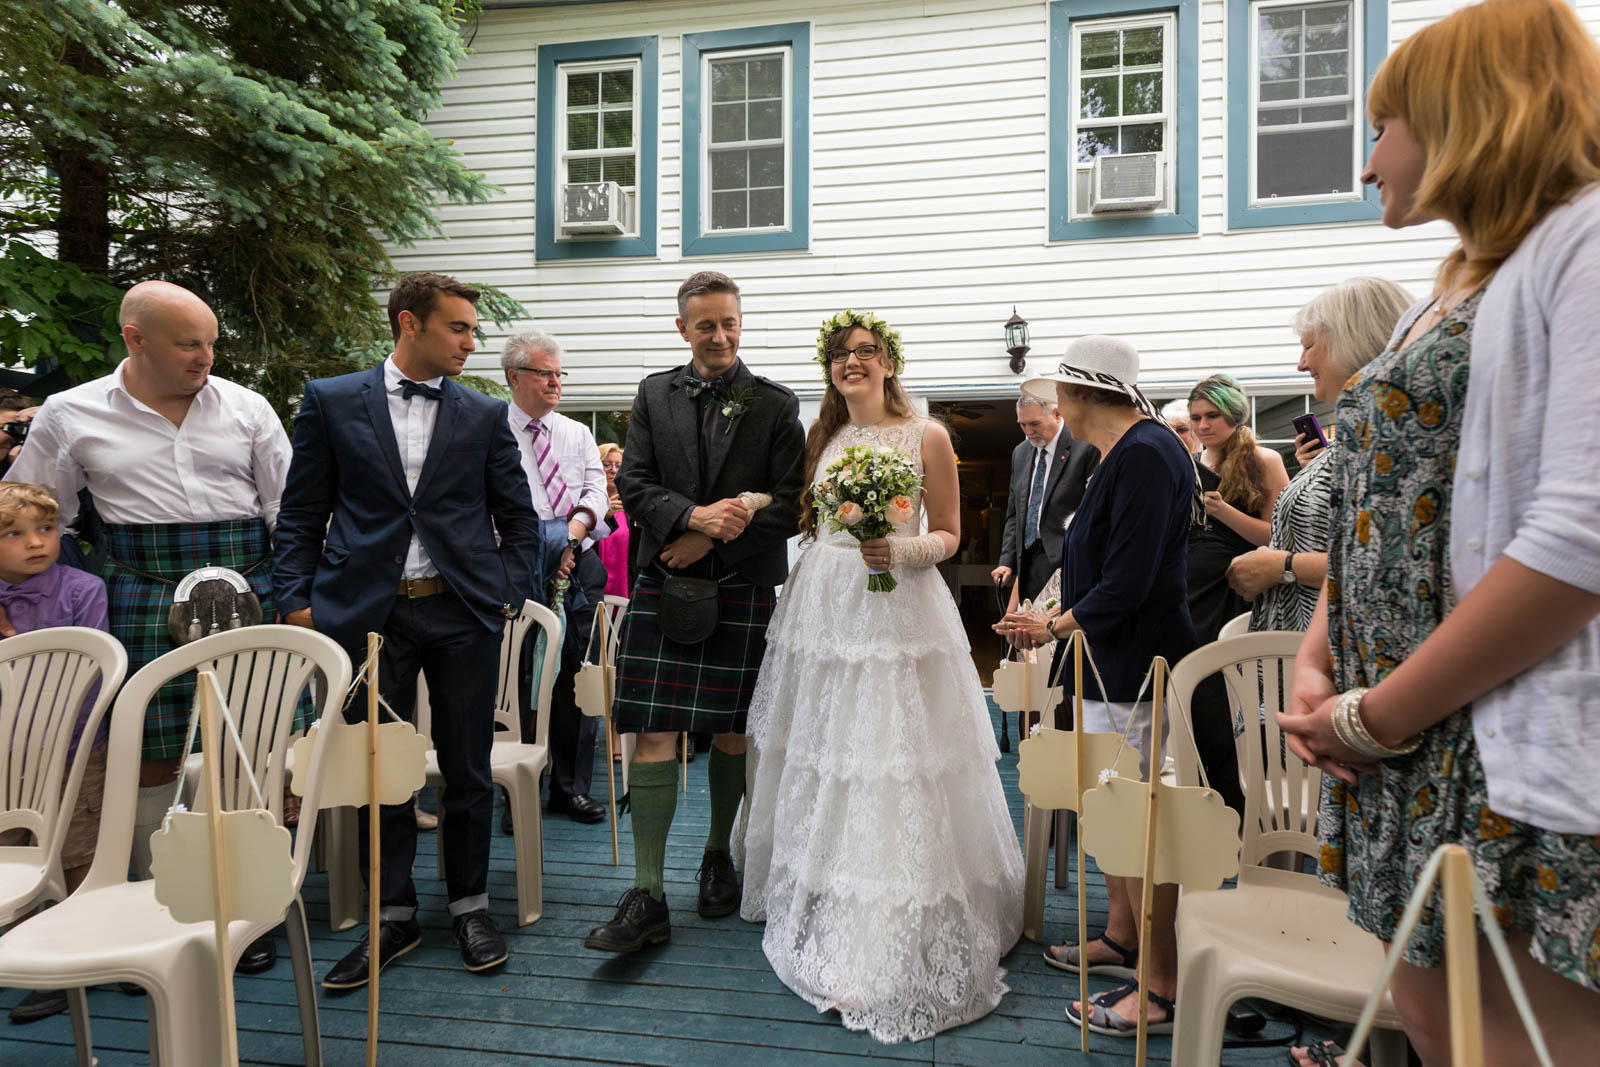 The Cove Inn wedding Westport by Pixelicious Ottawa wedding photographer